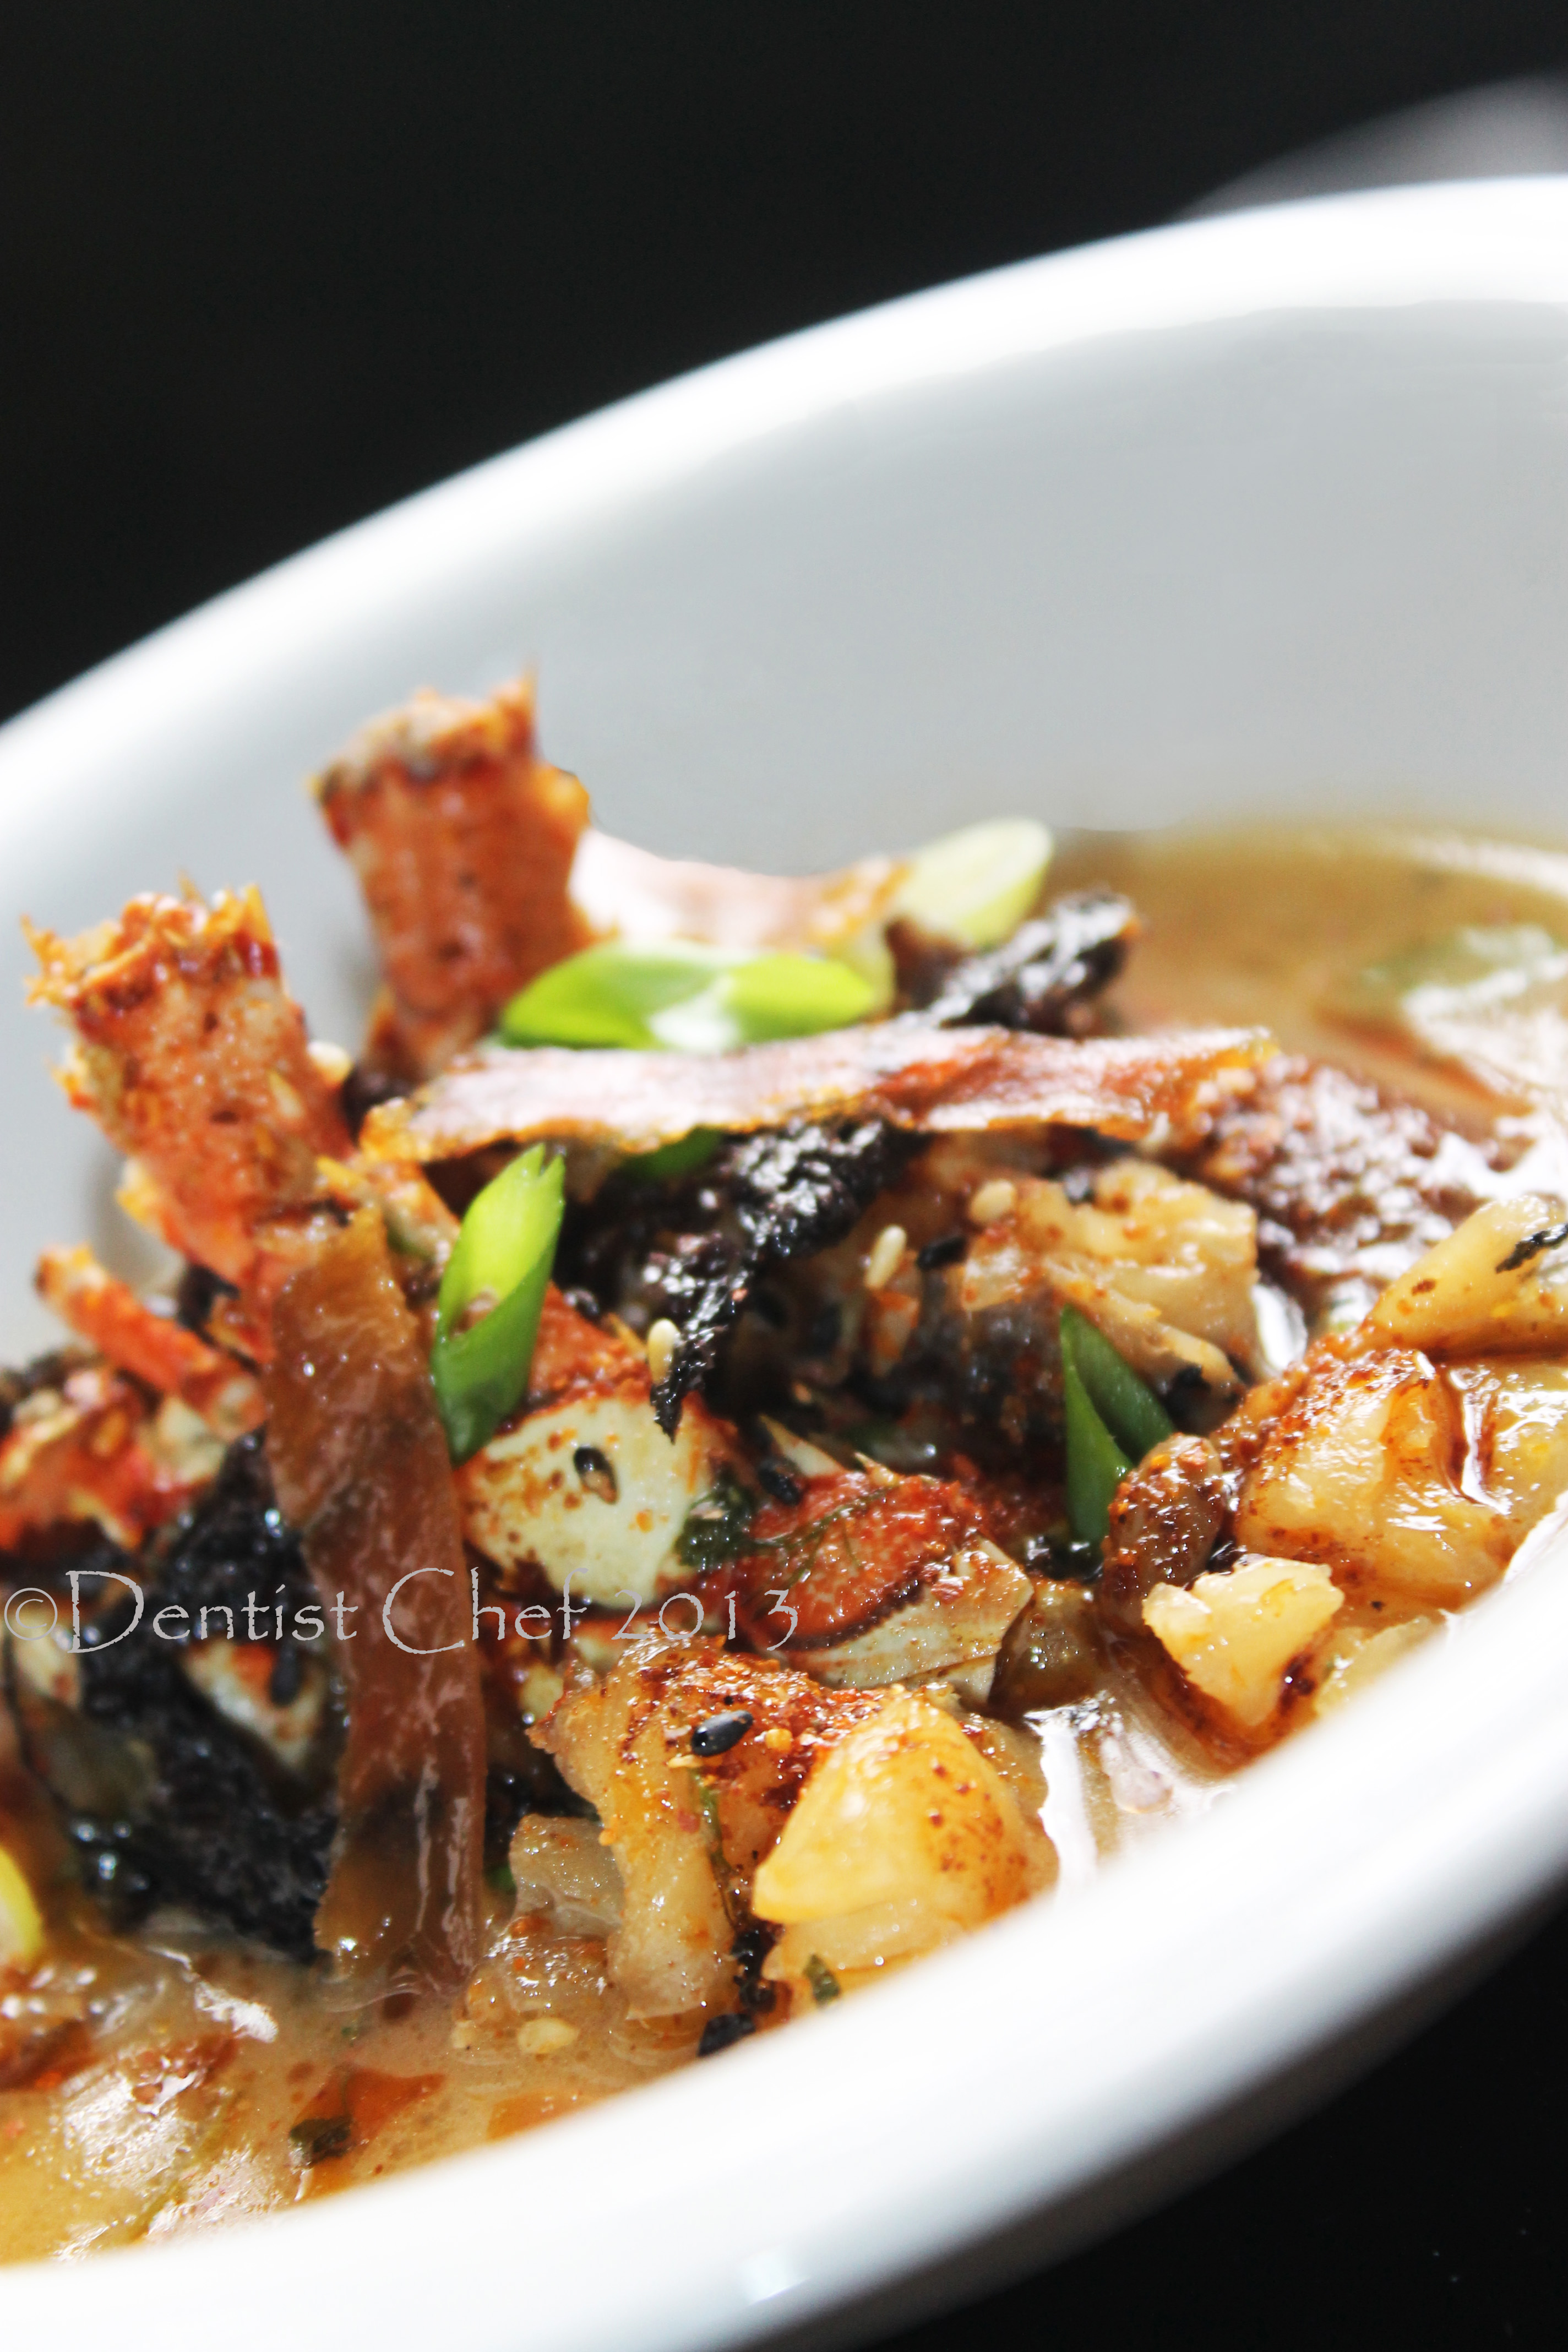 Lobster Miso Soup: Earthy Japanese Fermented Bean Lobster Soup Recipe | DENTIST CHEF